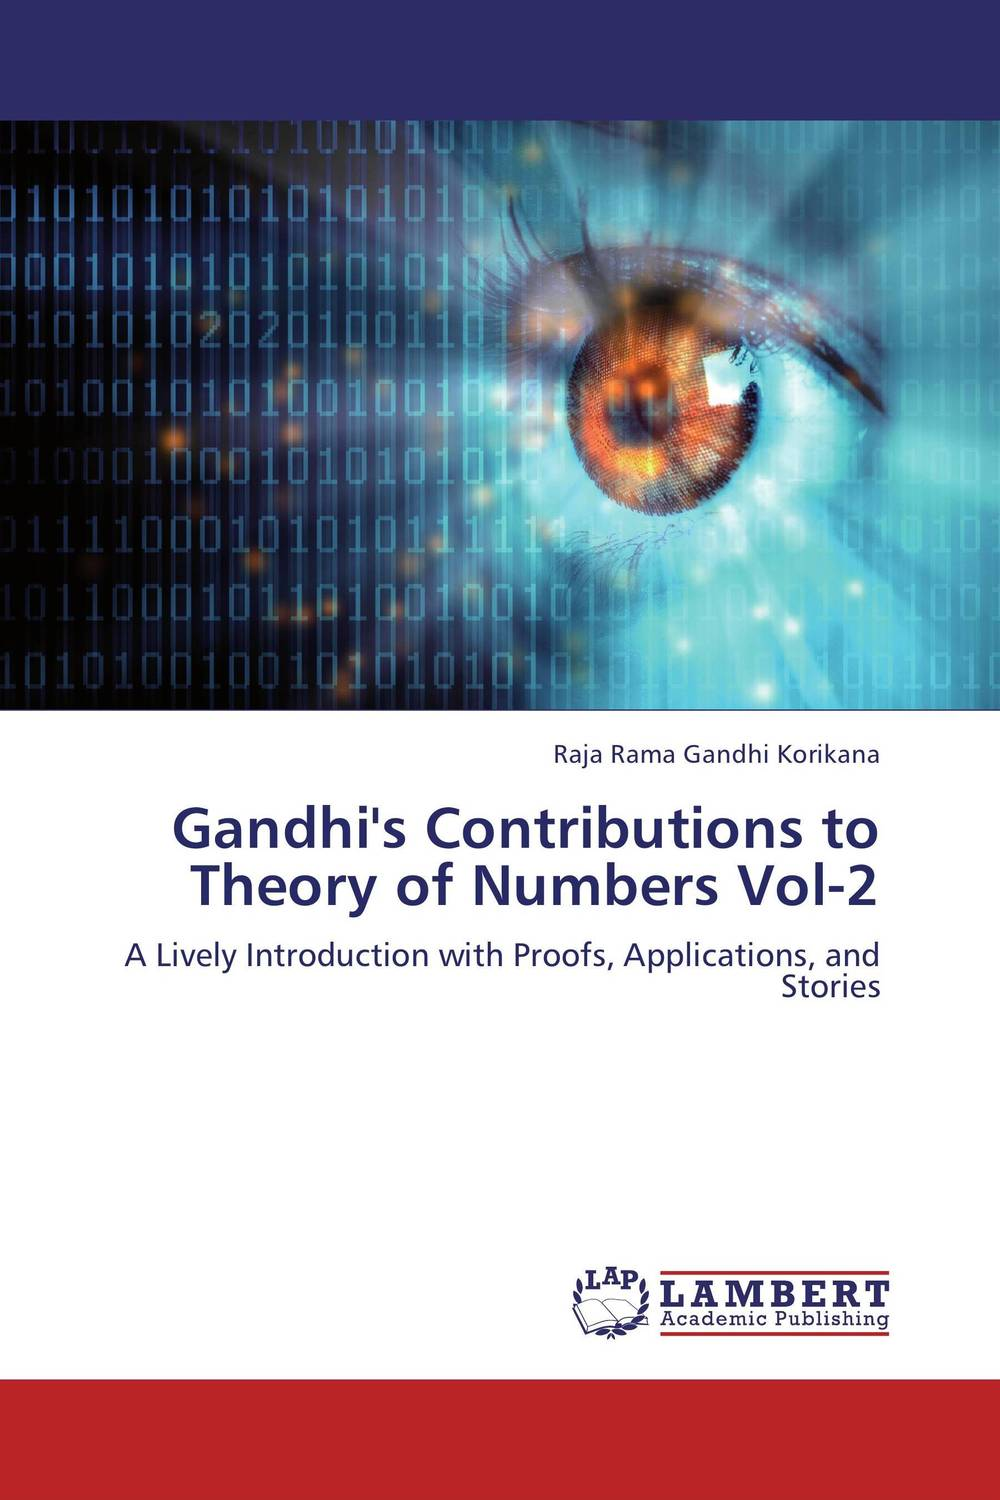 Gandhi's Contributions to Theory of Numbers Vol-2 dr david m mburu prof mary w ndungu and prof ahmed hassanali virulence and repellency of fungi on macrotermes and mediating signals